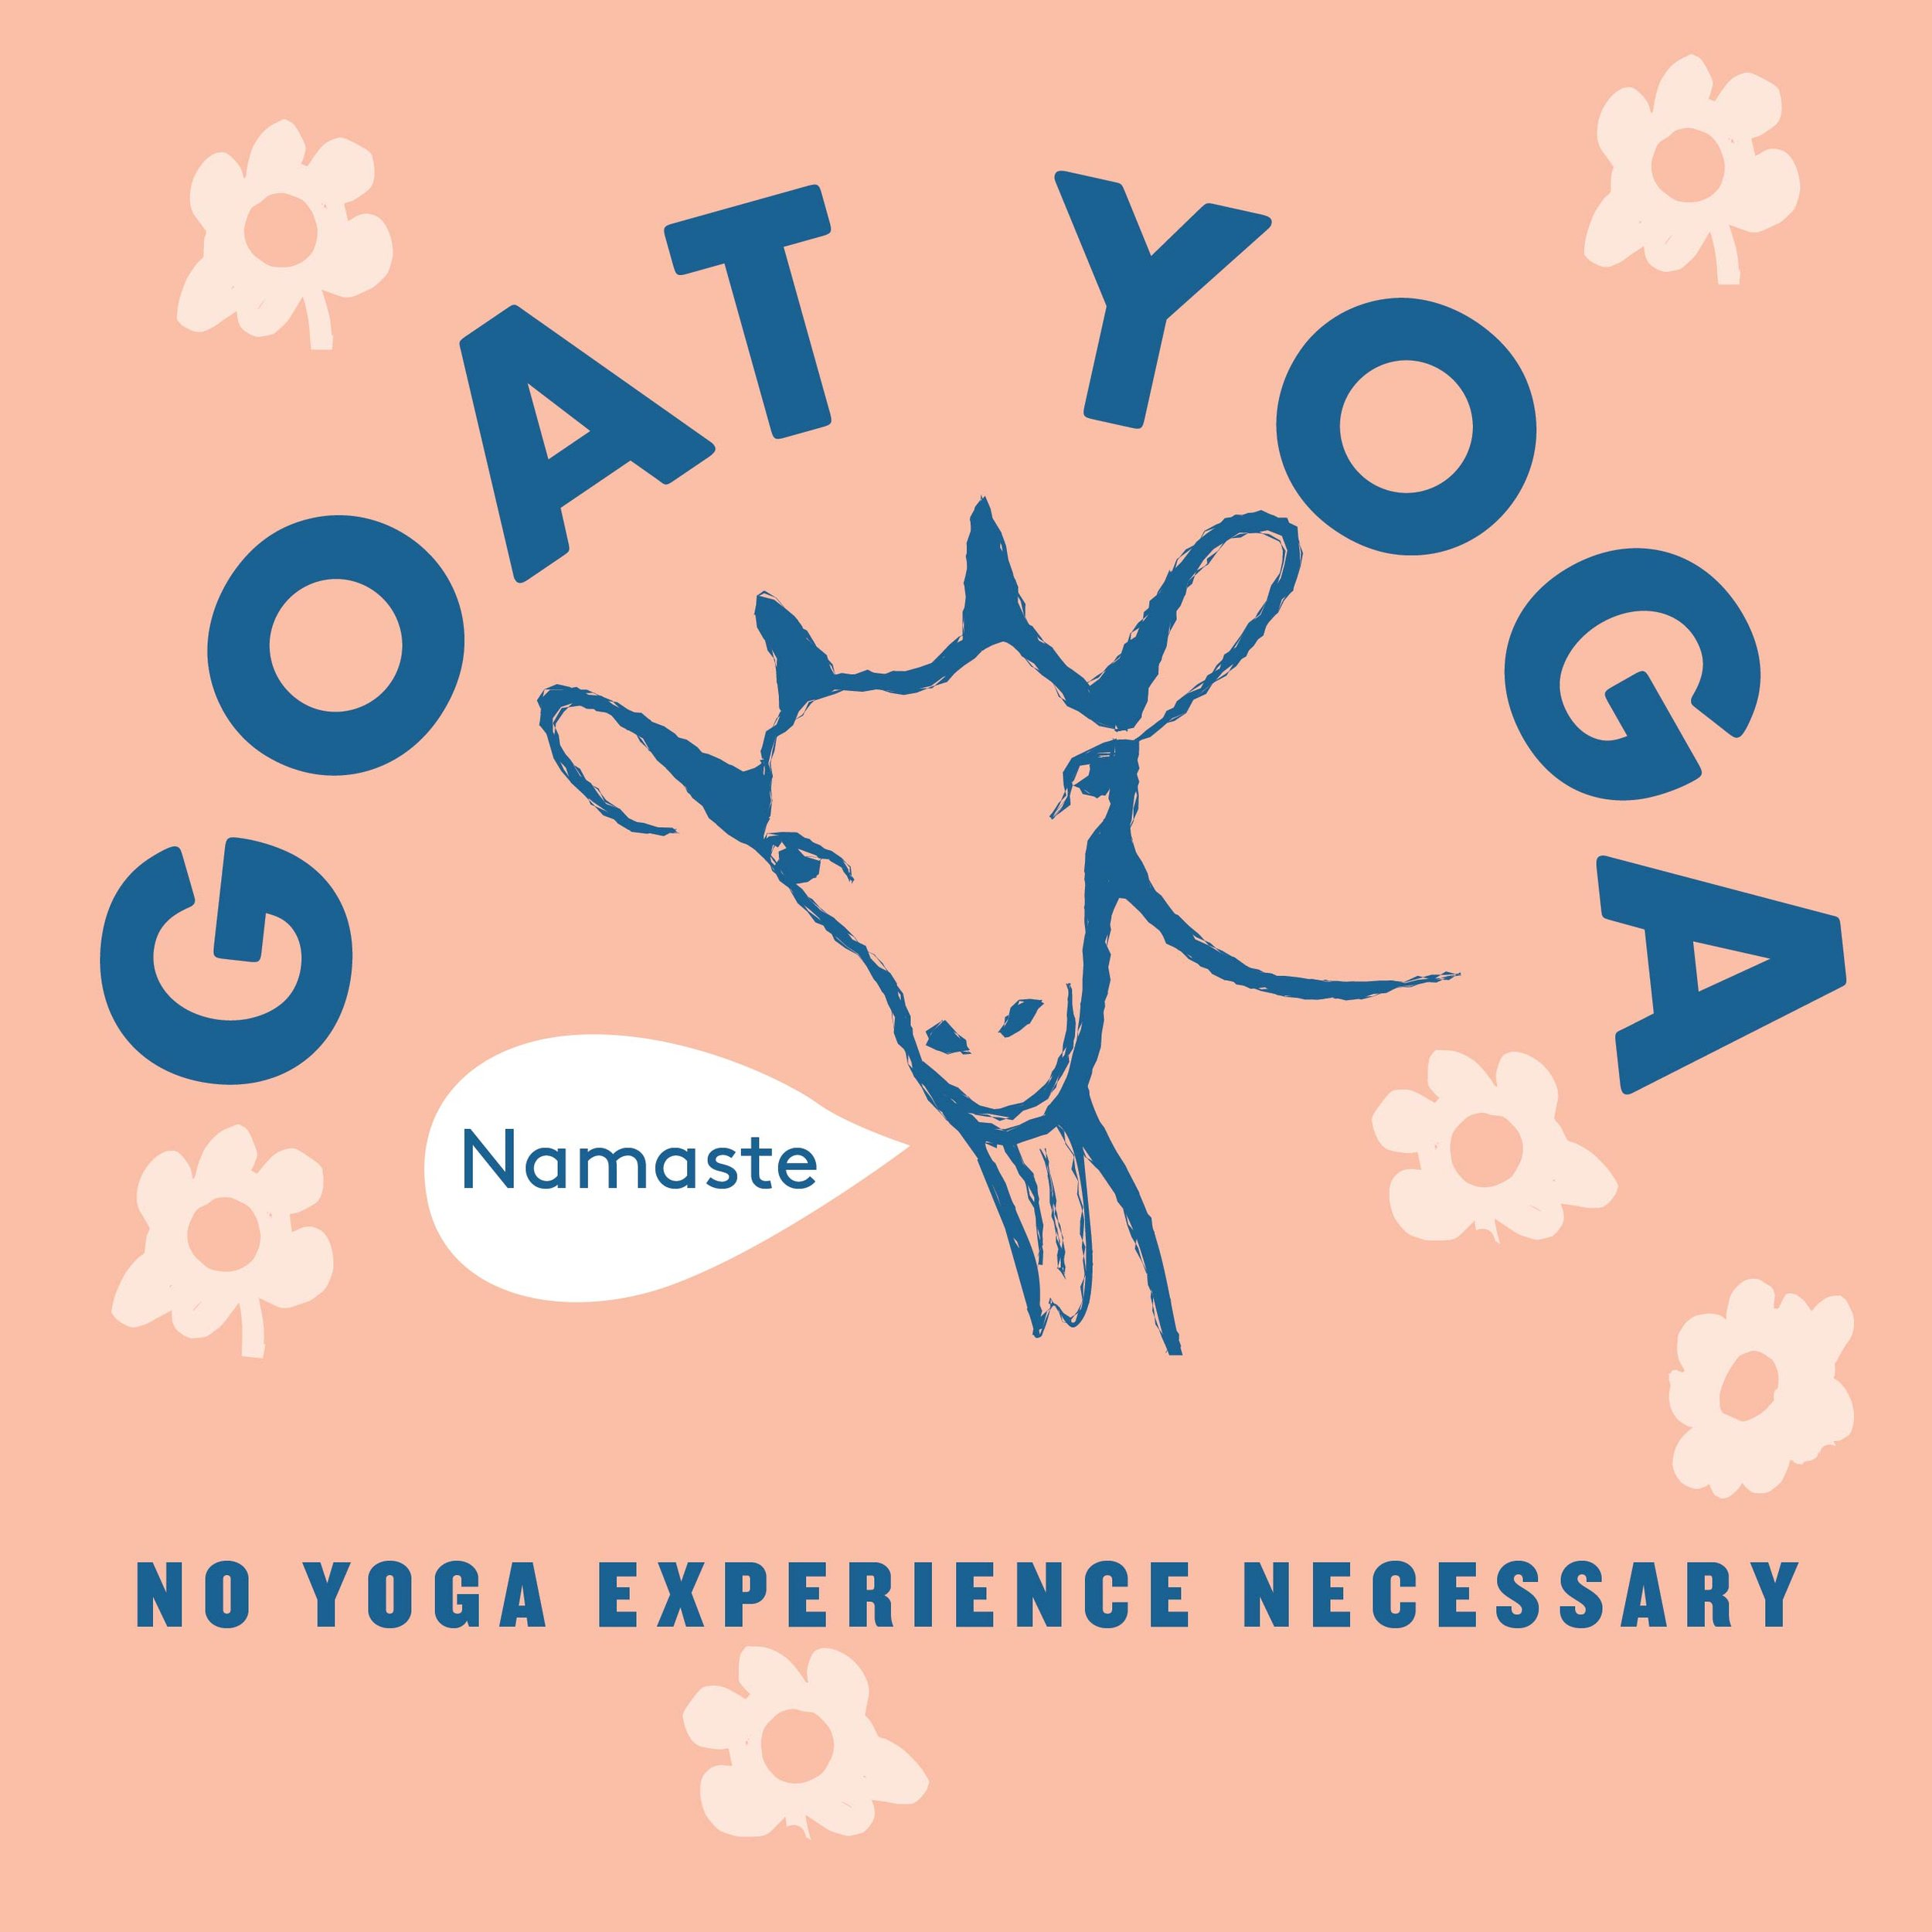 Goat Yoga - June 21, 11:00am, 11:35am, 12:10pm & 12:45pmMeet us at the Mart for Goat Yoga!! Appropriate for all levels, no yoga experience necessary. The yoga class is designed in a way to help participants connect with the goats, and also socialize the little goats so they can go out into the community and help our environment through City Grazing's grazing programs.